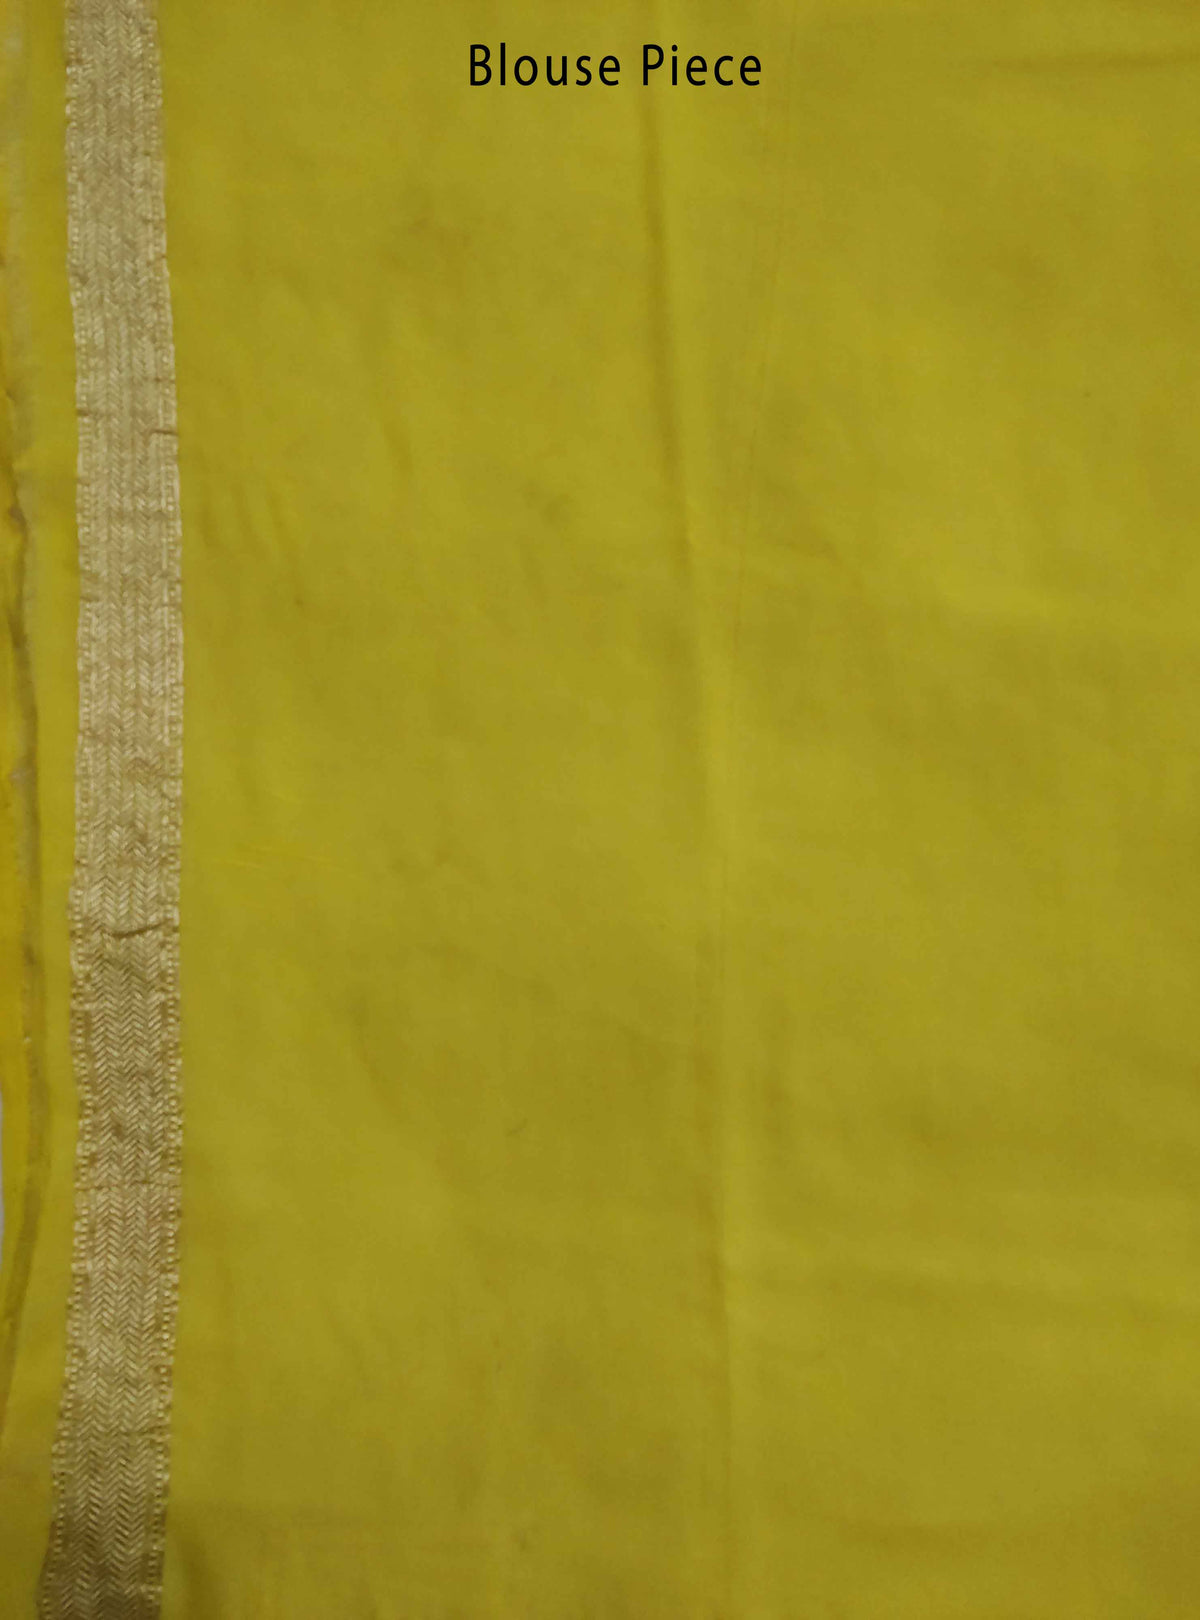 Lime yellow khaddi georgette handloom Banarasi saree with mini flower booti (3) Blouse Piece